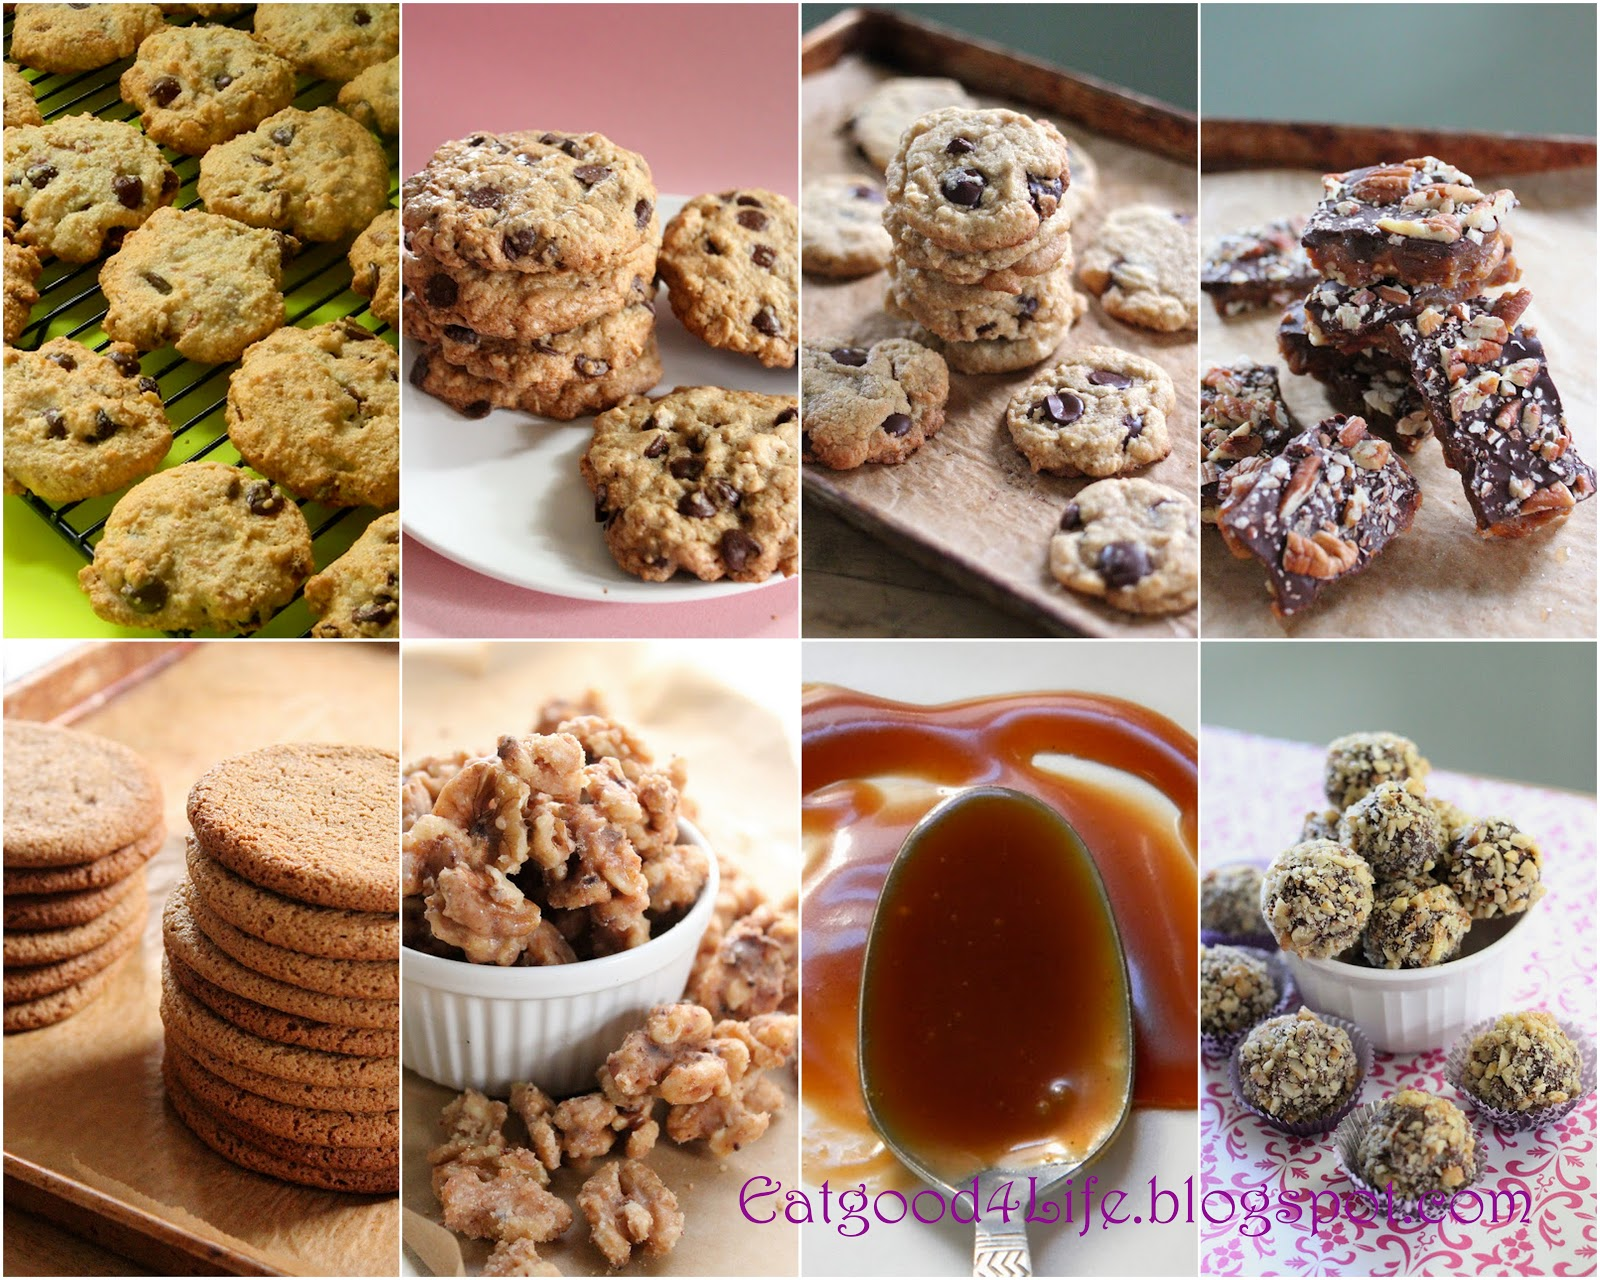 pics 6 Great Gluten-Free Gift Ideas for the Holidays